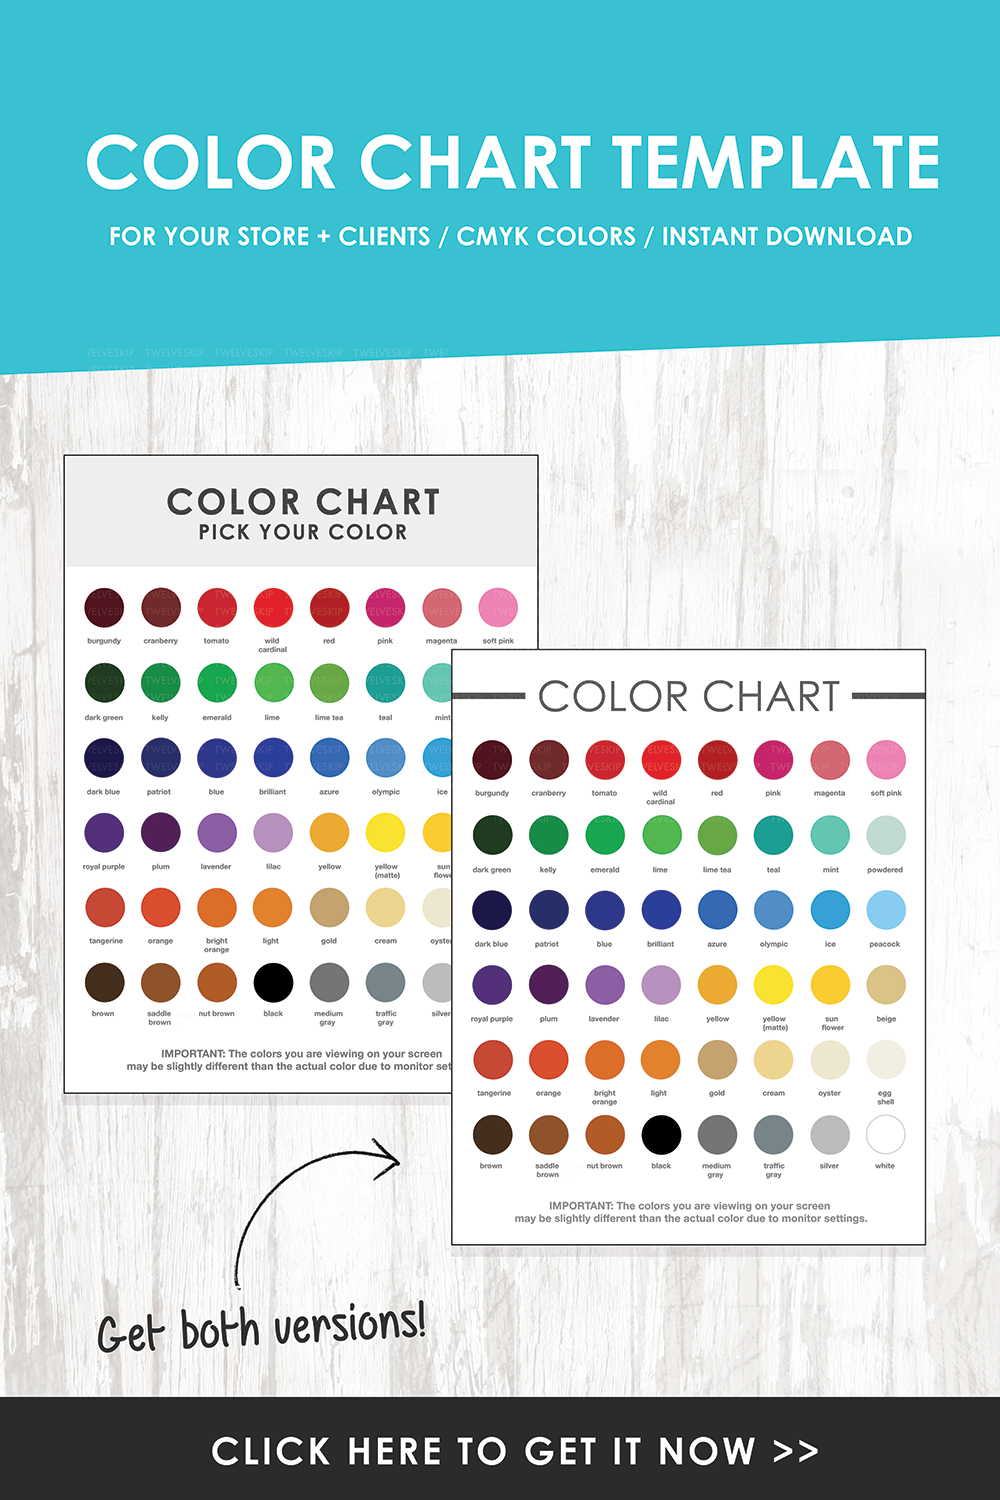 Color Chart Template For Your Store  Clients Make It Easy For